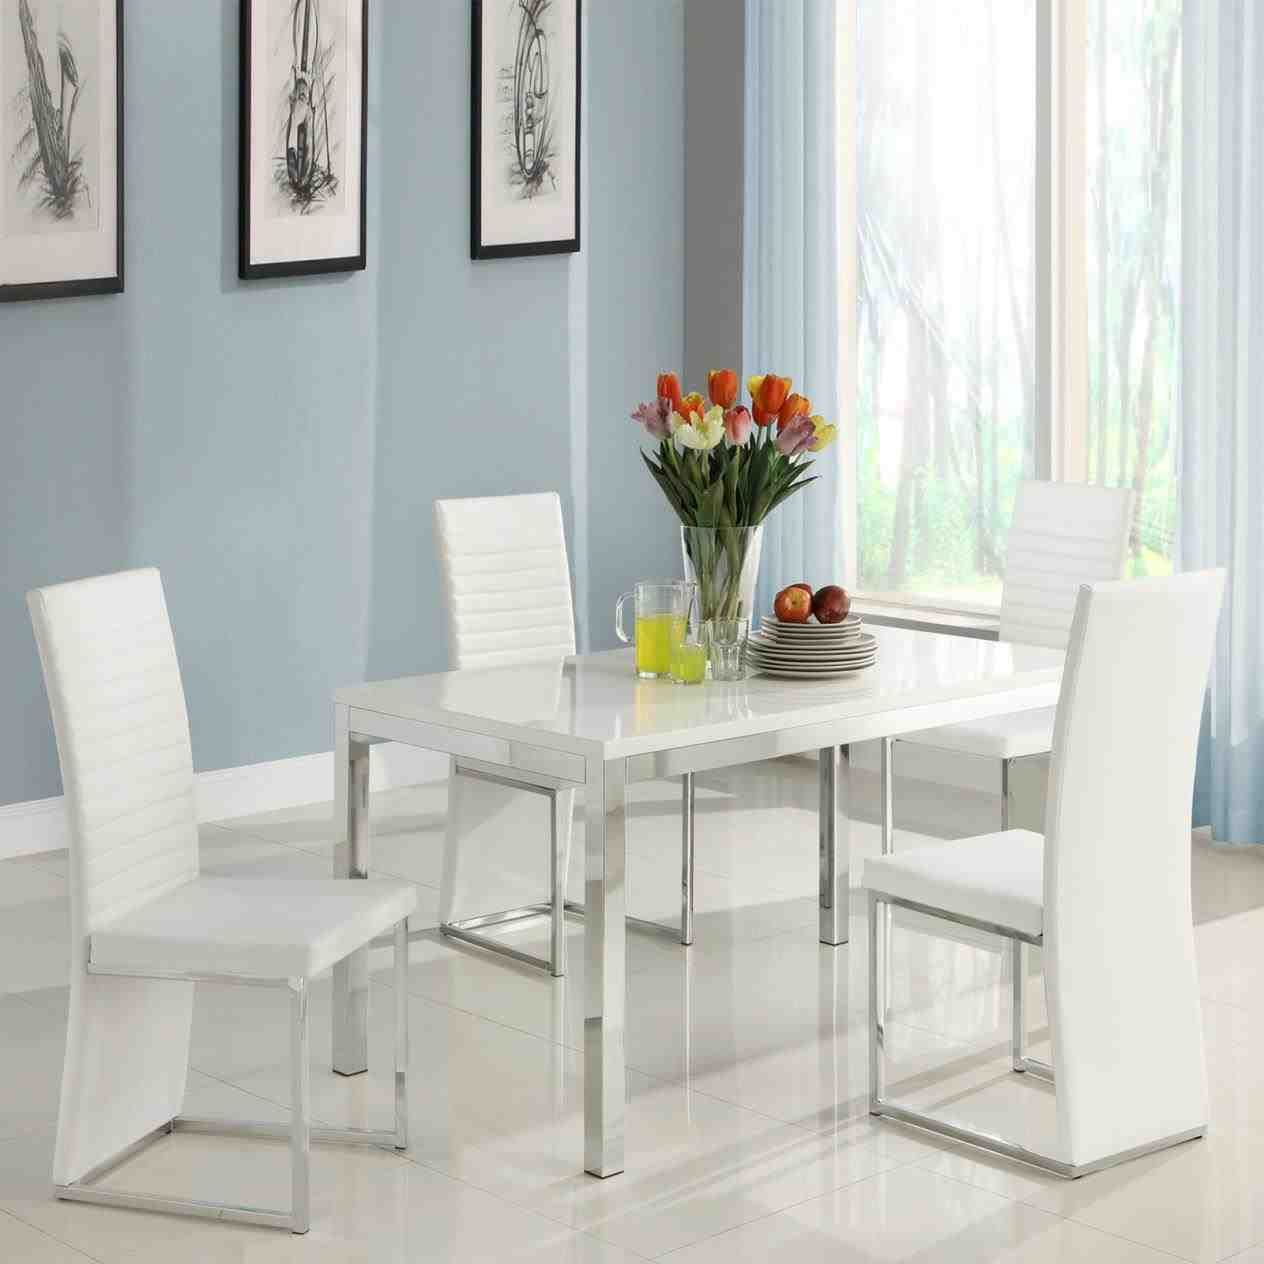 New Post Modern 3 Piece Dining Set  Decors Ideas  Pinterest Pleasing Three Piece Dining Room Set 2018